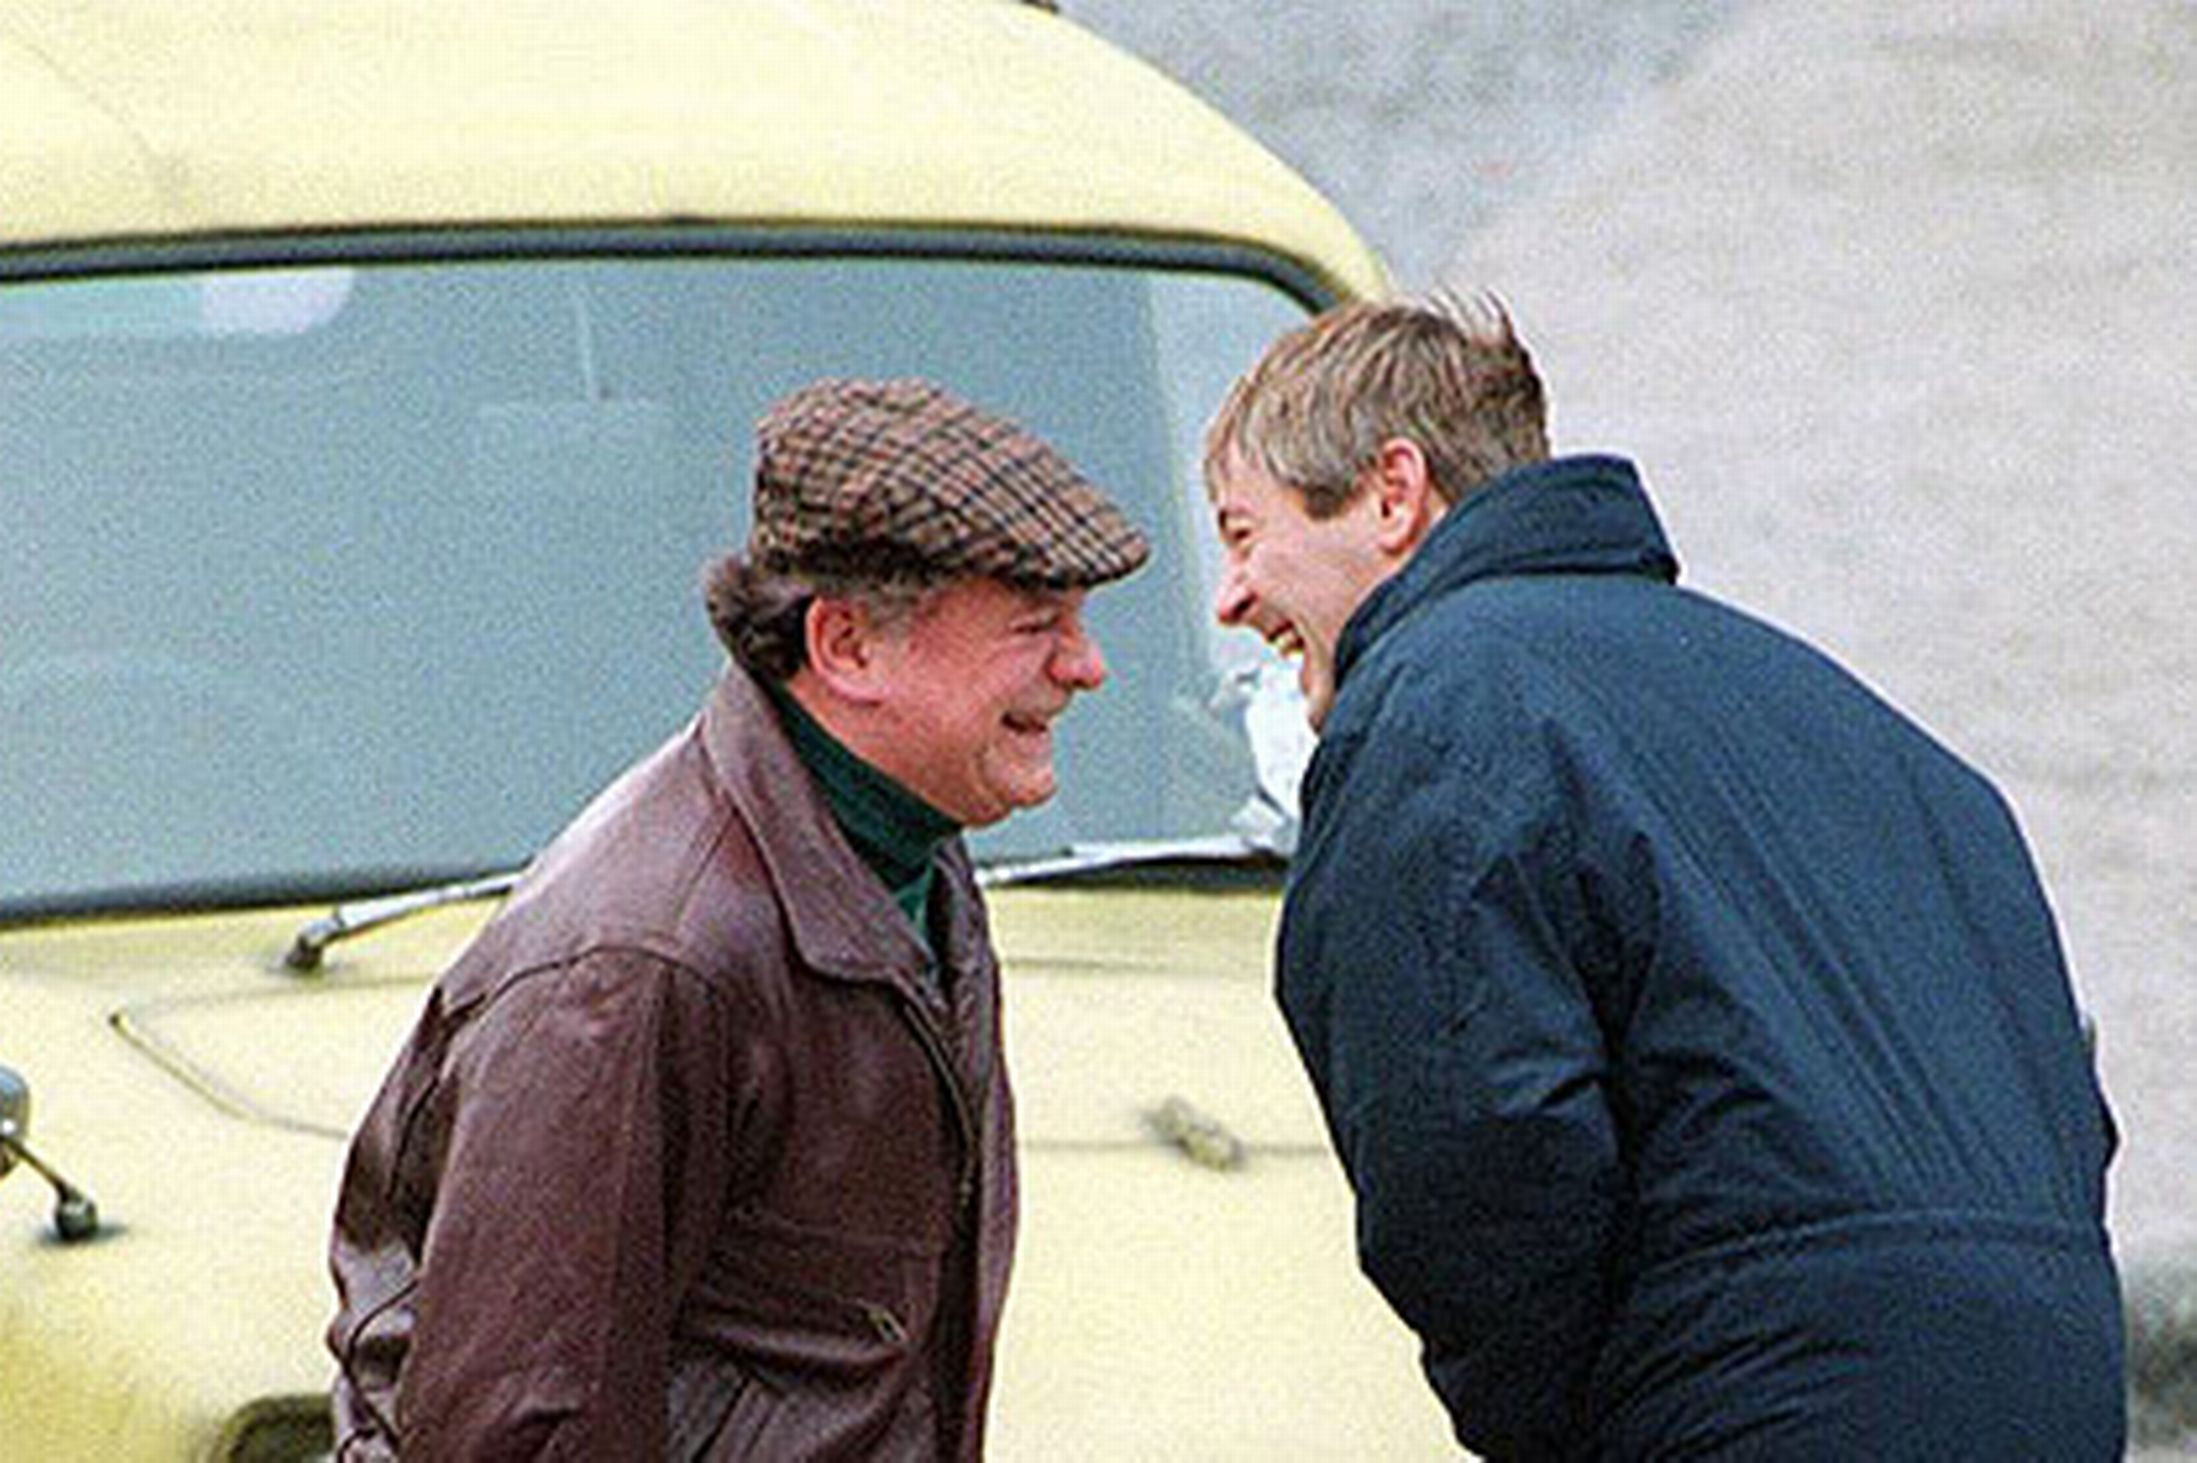 Only-Fools-and-Horses-5.jpg (2197×1463)